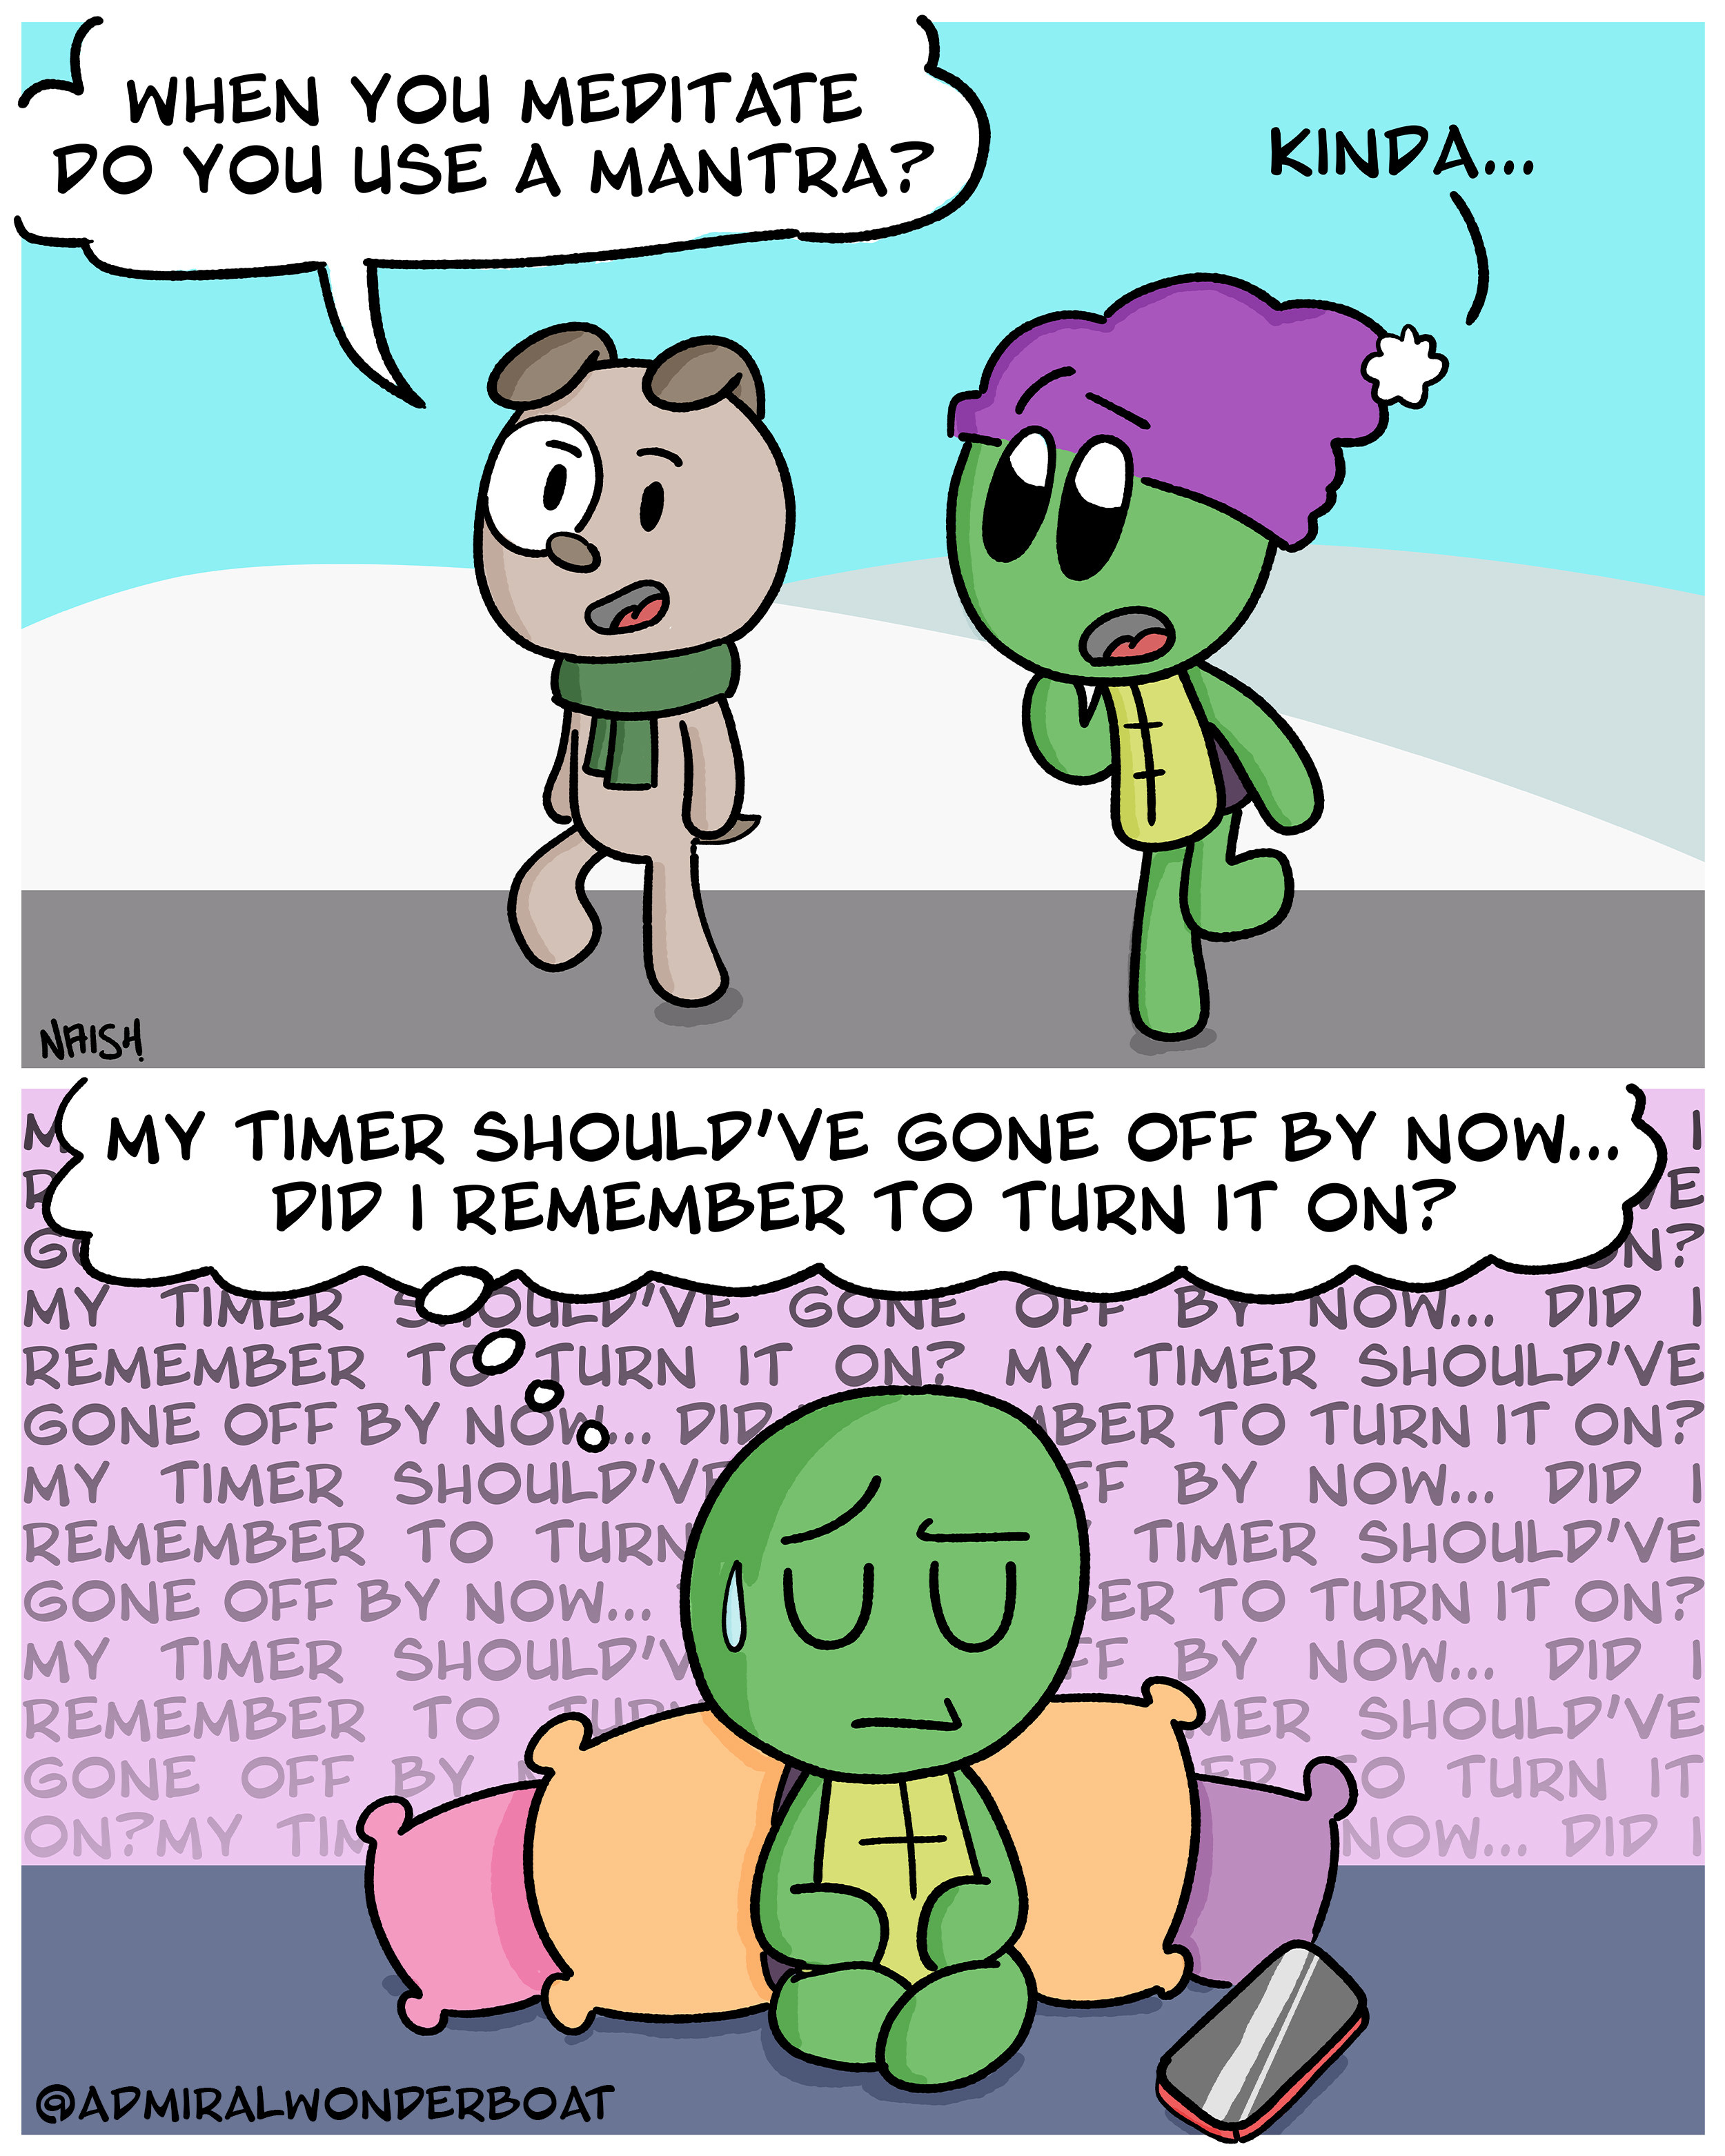 a cartoon turtle struggling to keep their thoughts quiet whilst meditating, afraid they didn't turn on their alarm